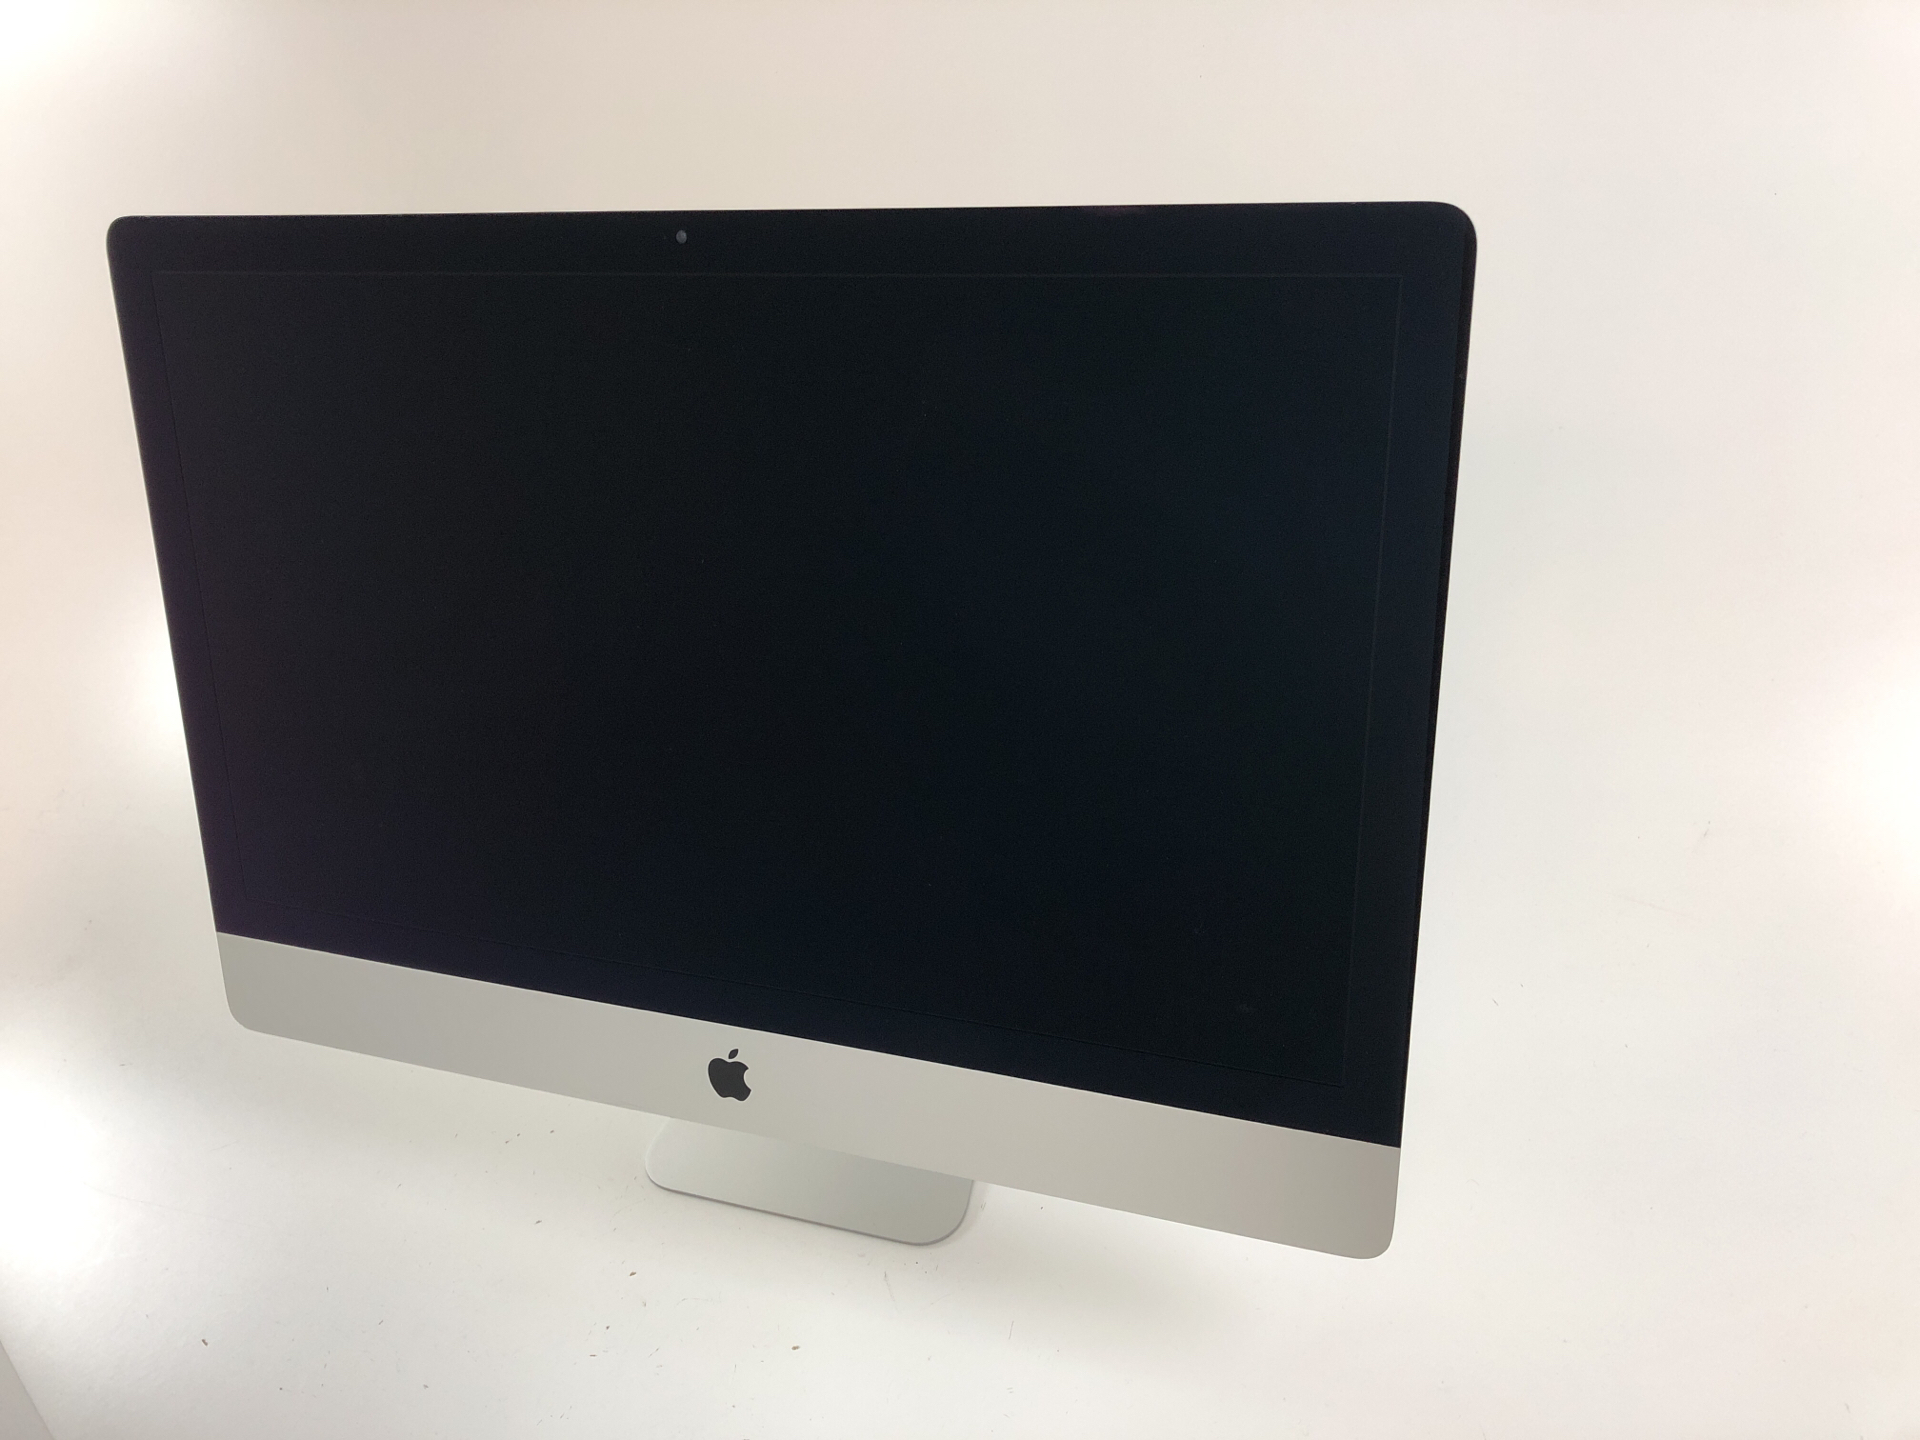 "iMac 27"" Late 2013 (Intel Quad-Core i5 3.4 GHz 8 GB RAM 1 TB HDD), Intel Quad-Core i5 3.4 GHz, 8 GB RAM, 1 TB HDD, Bild 1"